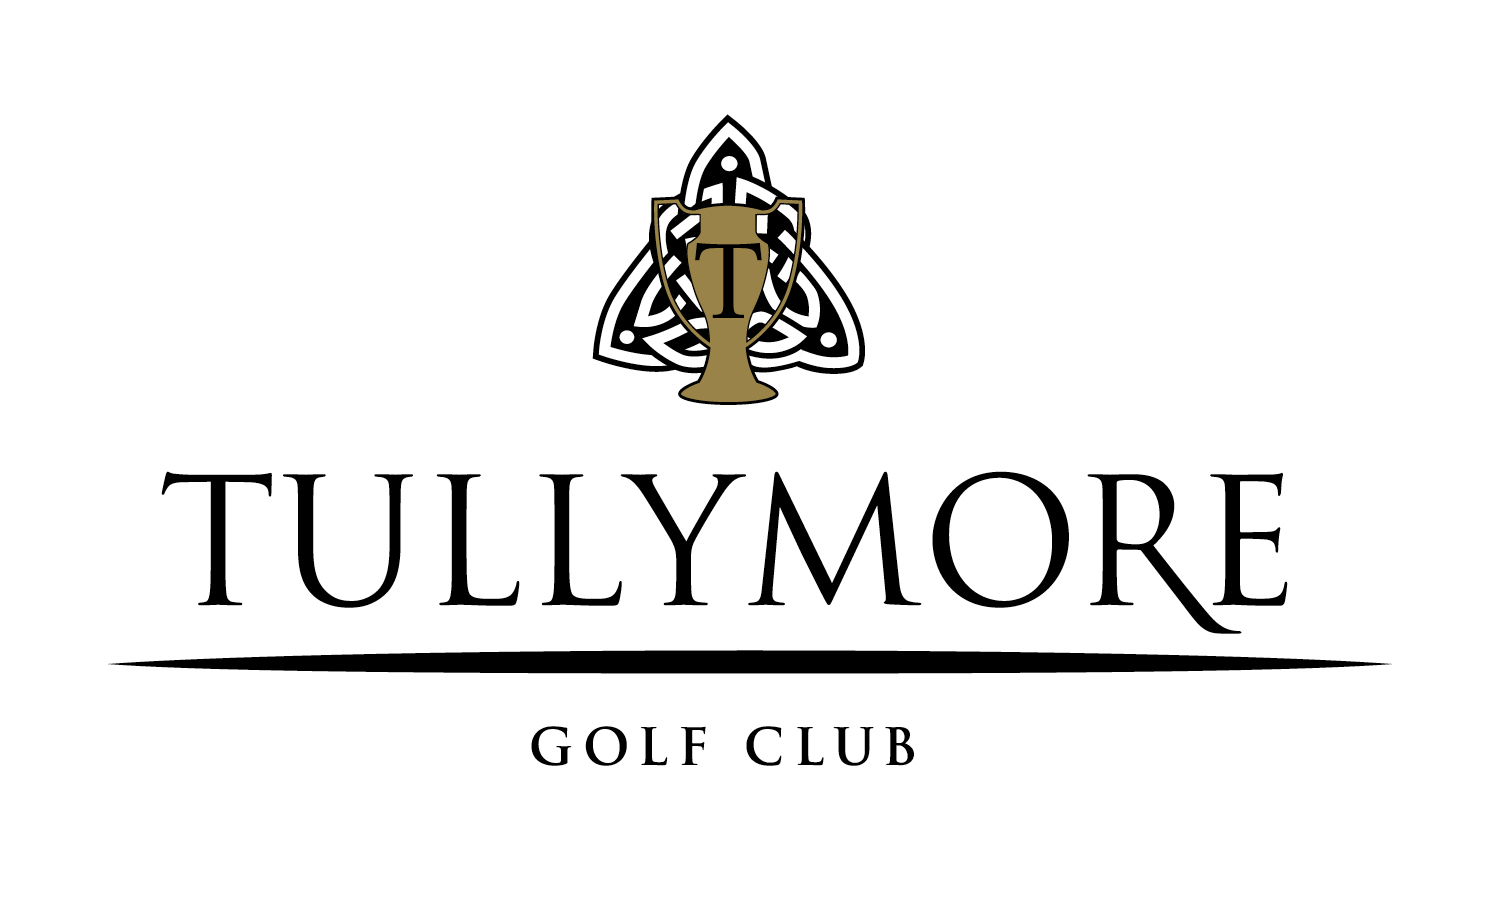 Tullymore Golf Club